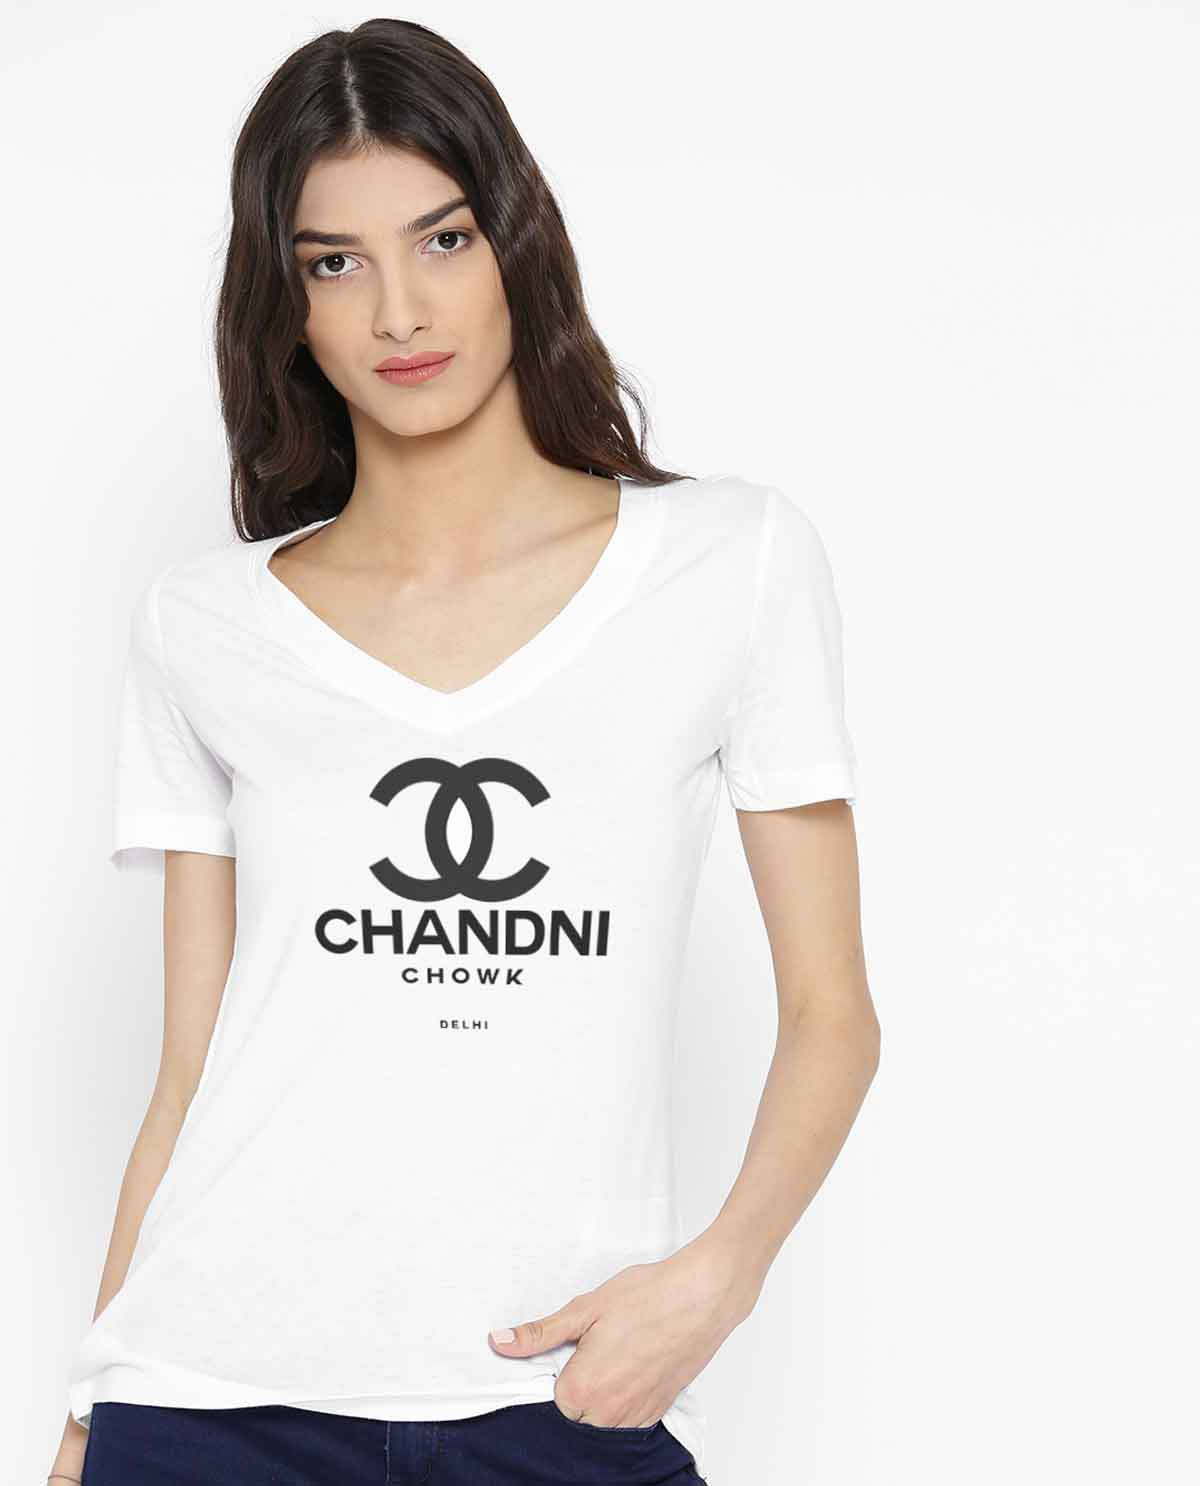 V neck white fitted tshirt worn by south asian female model